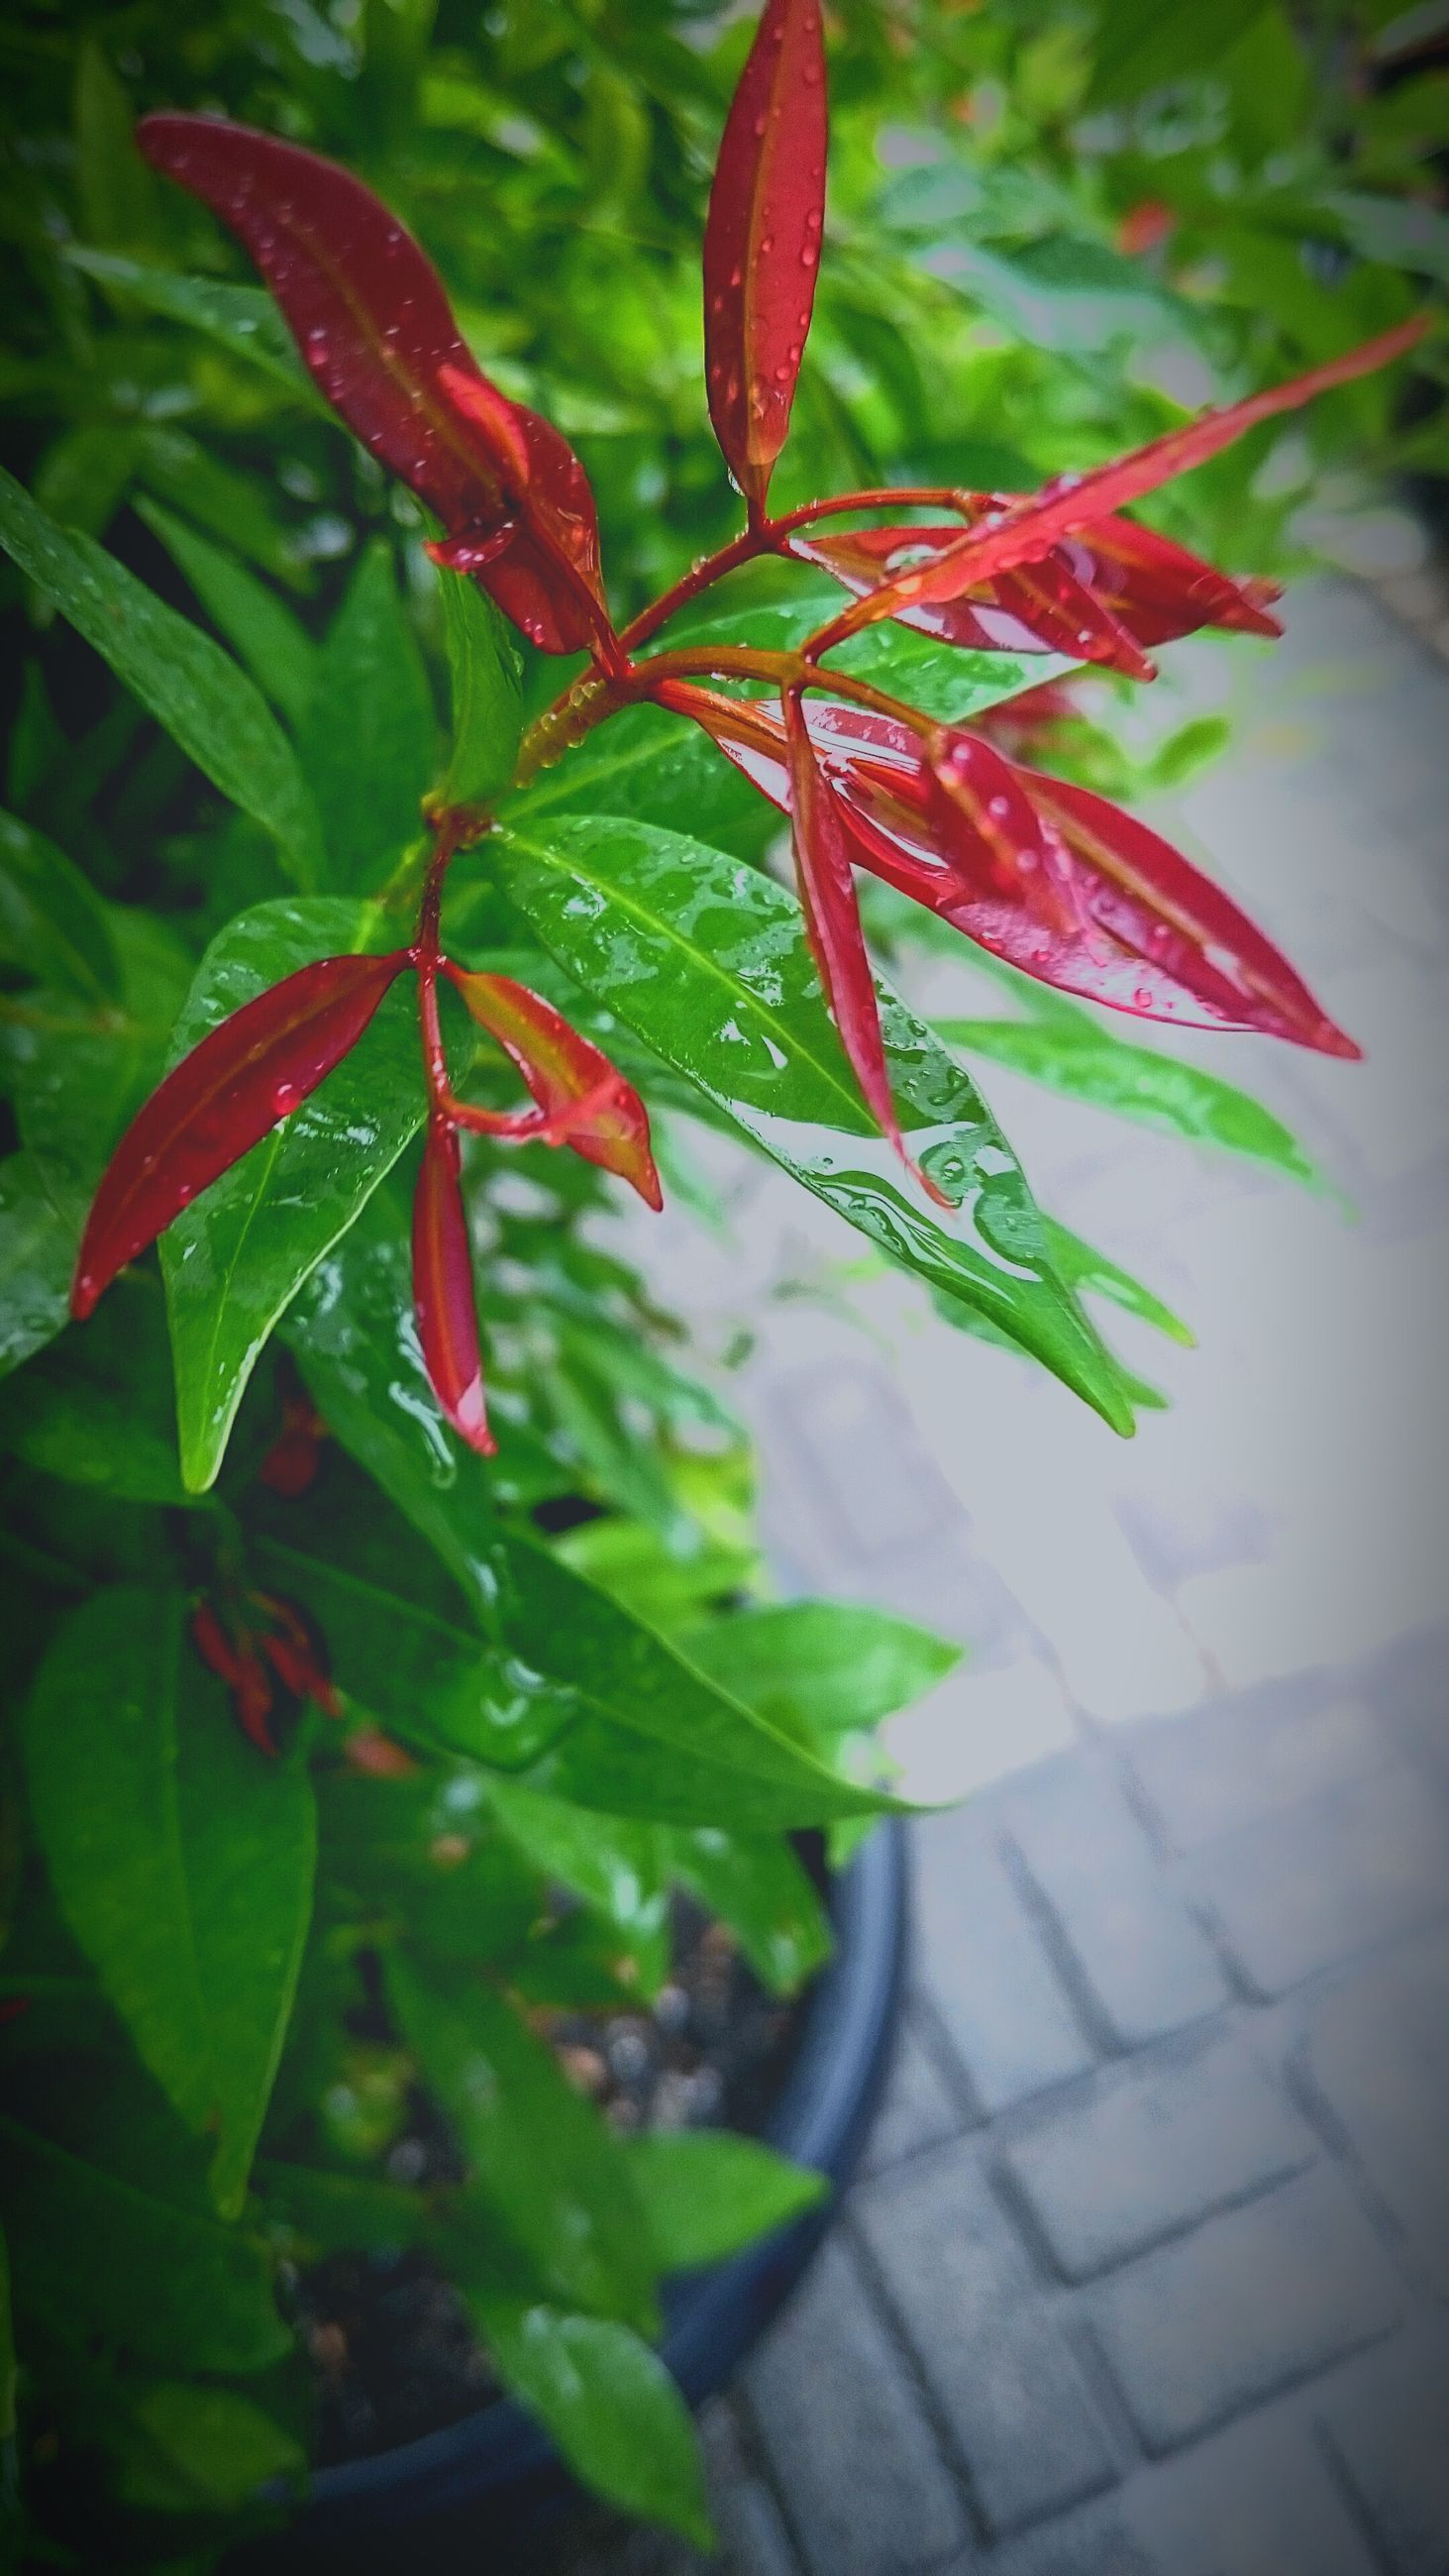 leaf, red, growth, plant, freshness, close-up, green color, nature, focus on foreground, beauty in nature, stem, growing, day, leaves, outdoors, no people, fragility, leaf vein, sunlight, botany